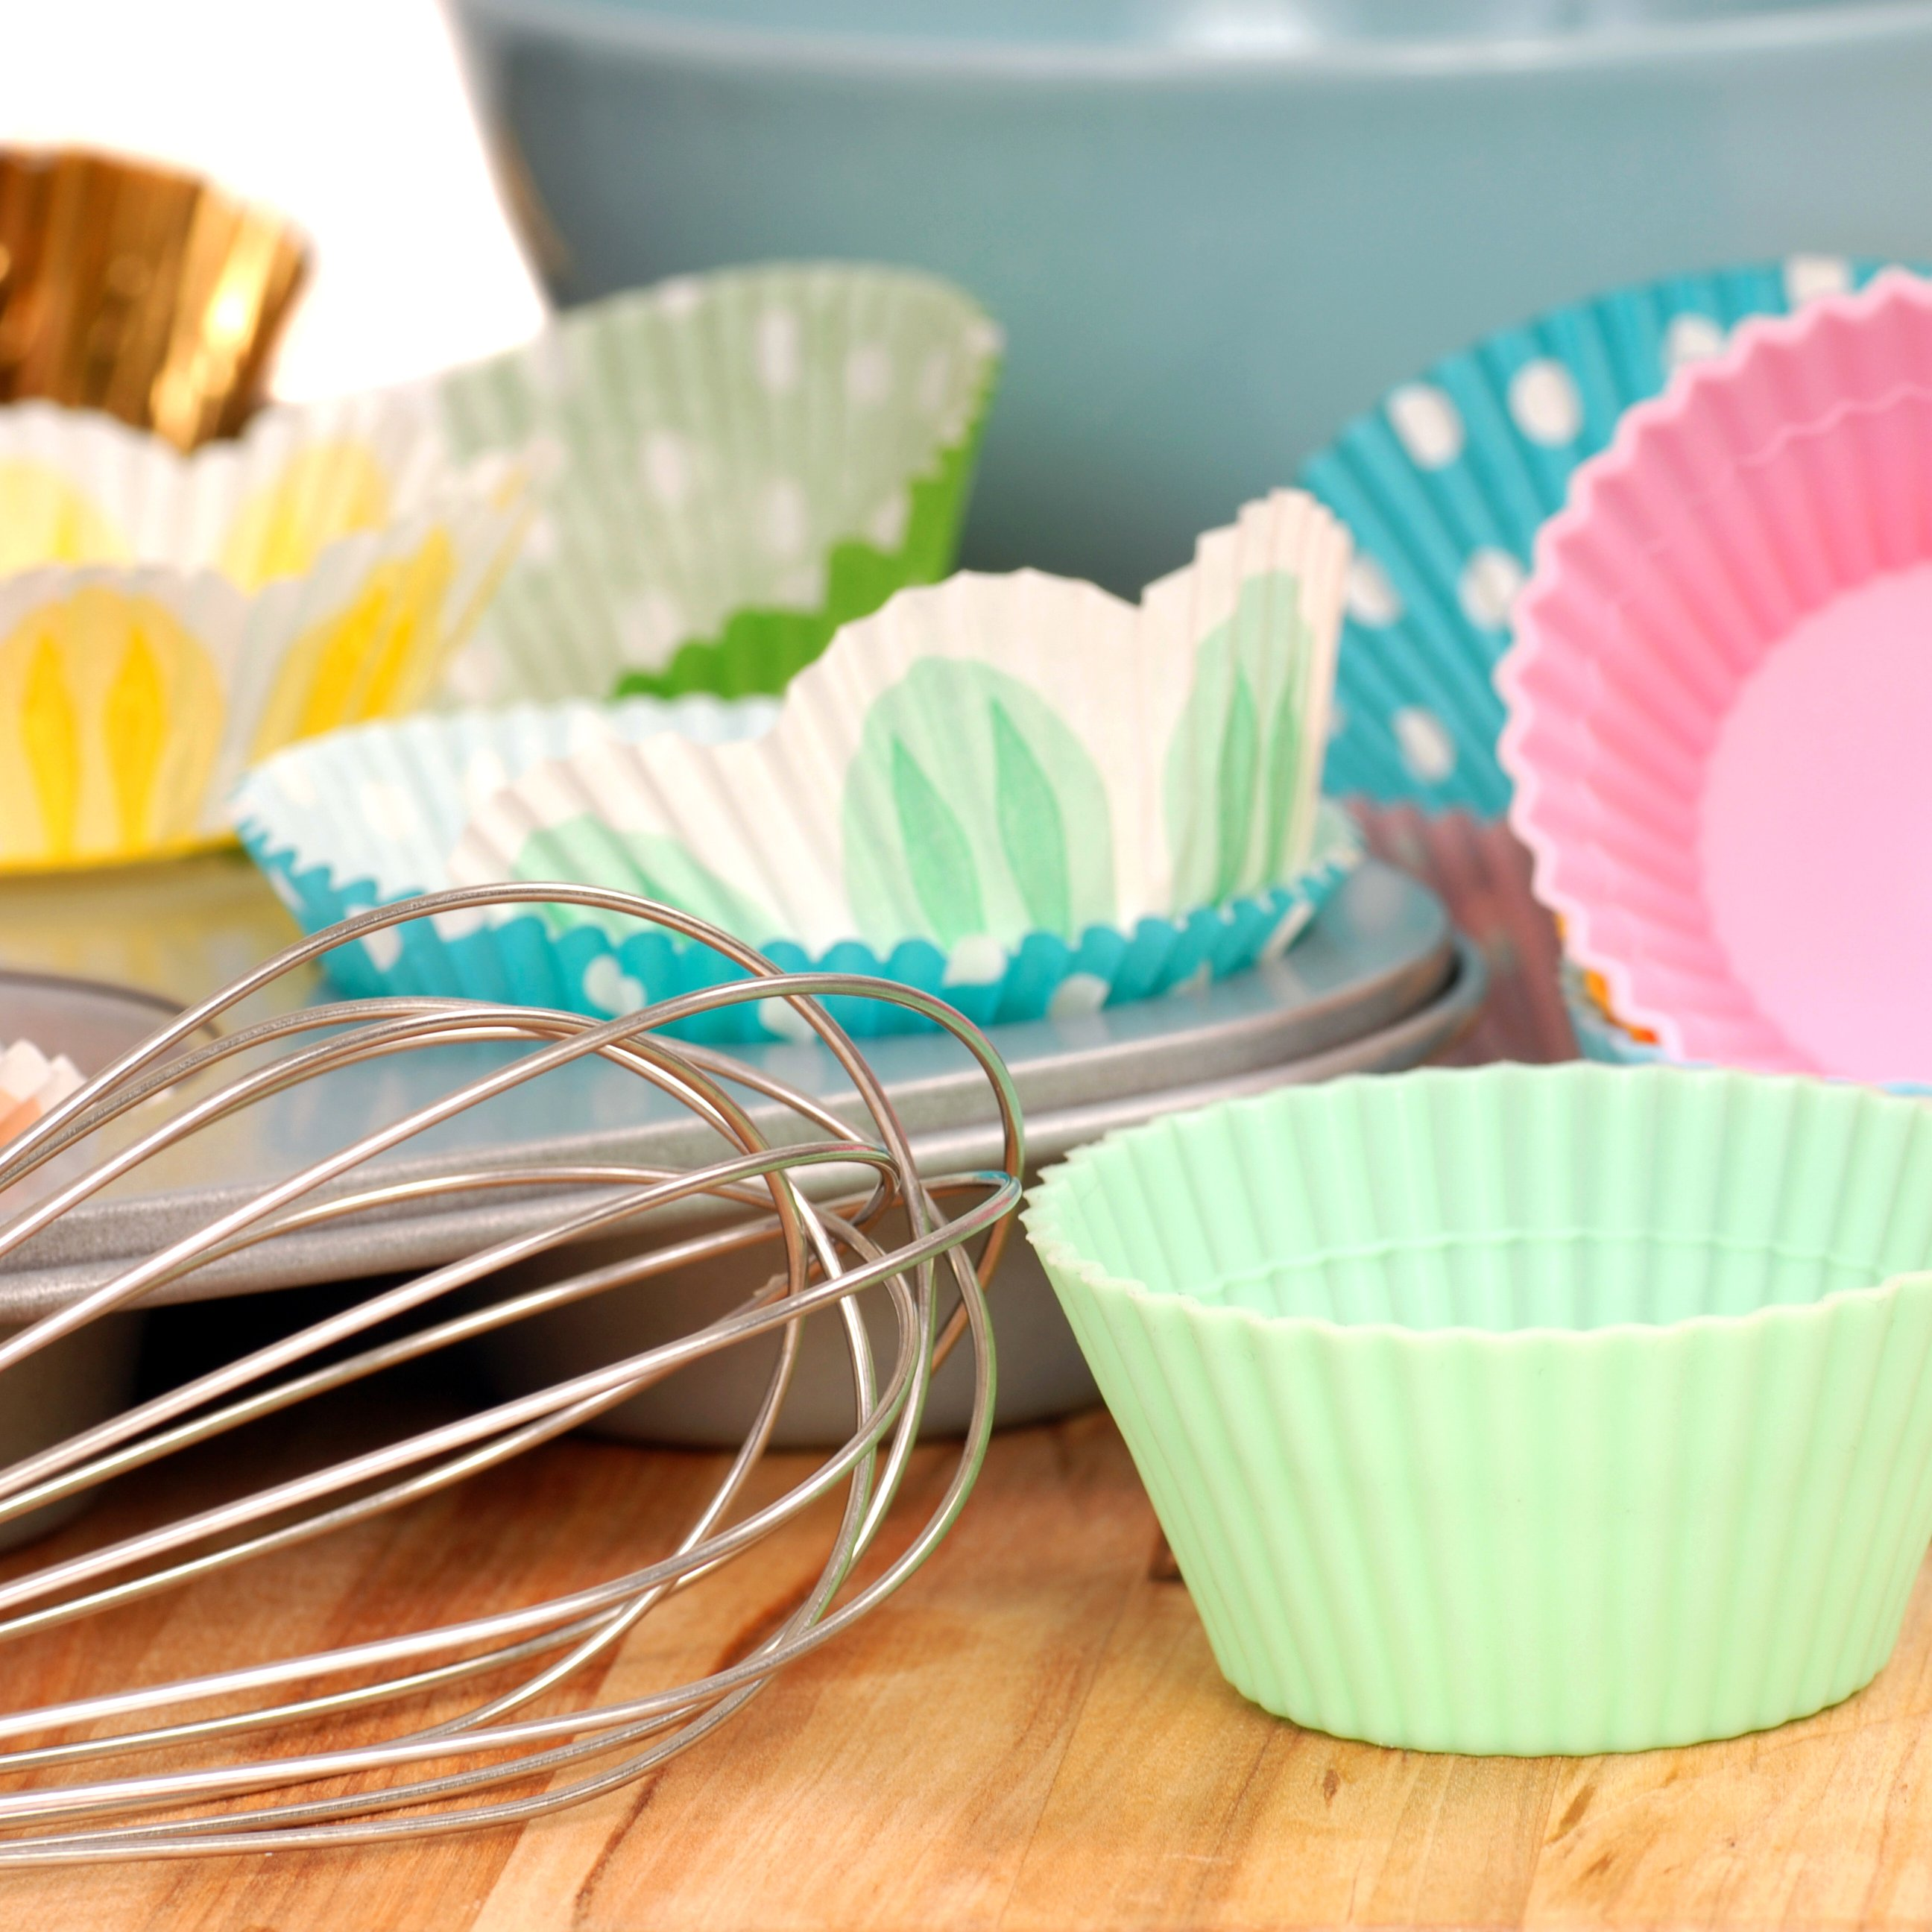 cake decorating supplies brisbane south meknuncom - Cake Decorating Supplies Near Me